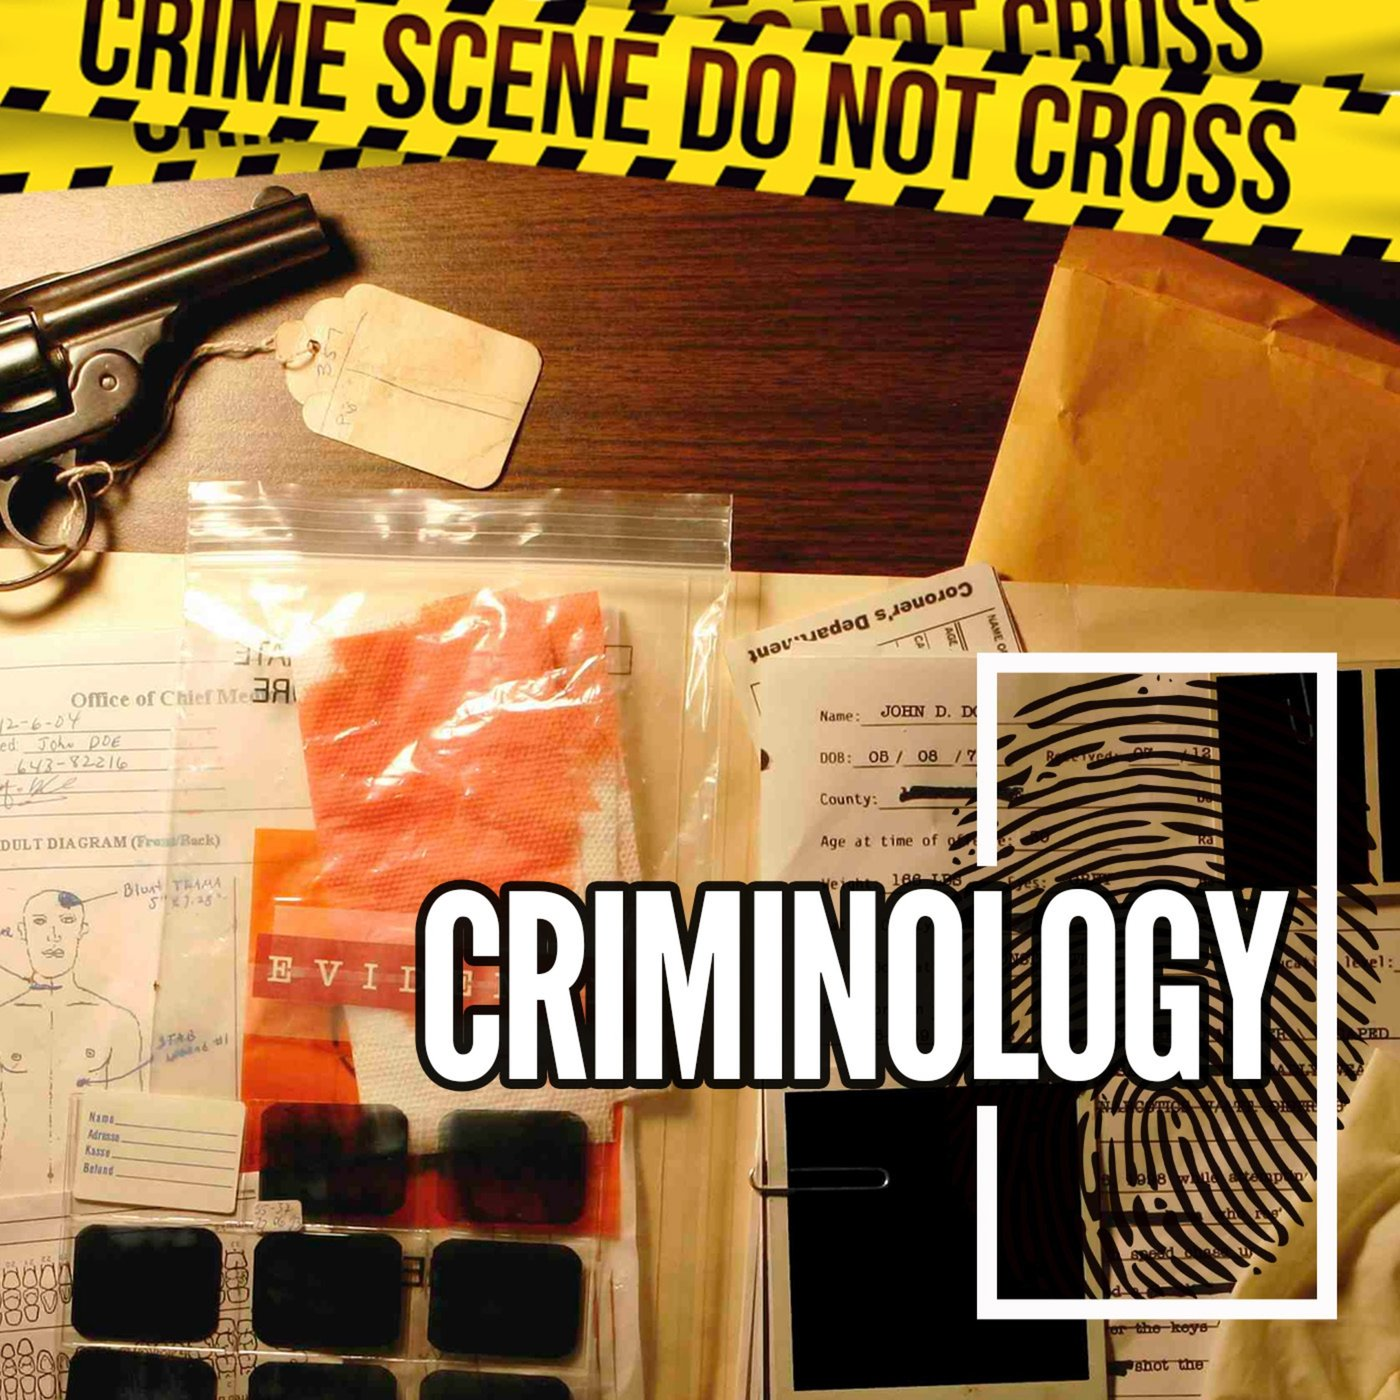 Criminology | Listen via Stitcher for Podcasts